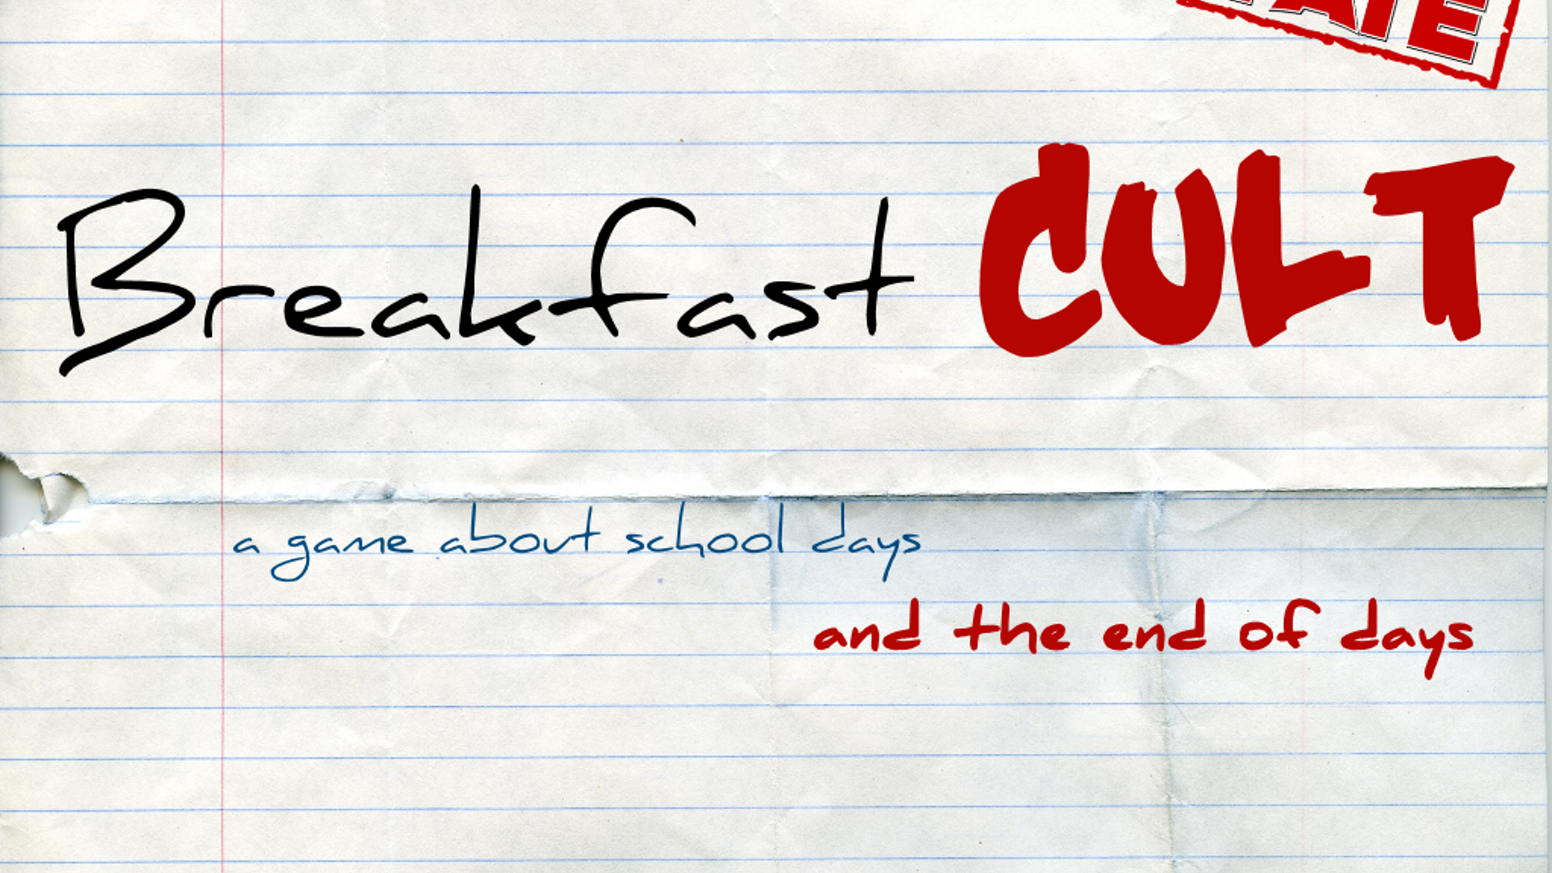 Breakfast Cult: A Cosmic Horror Anime RPG by Liberi Gothica Games ...